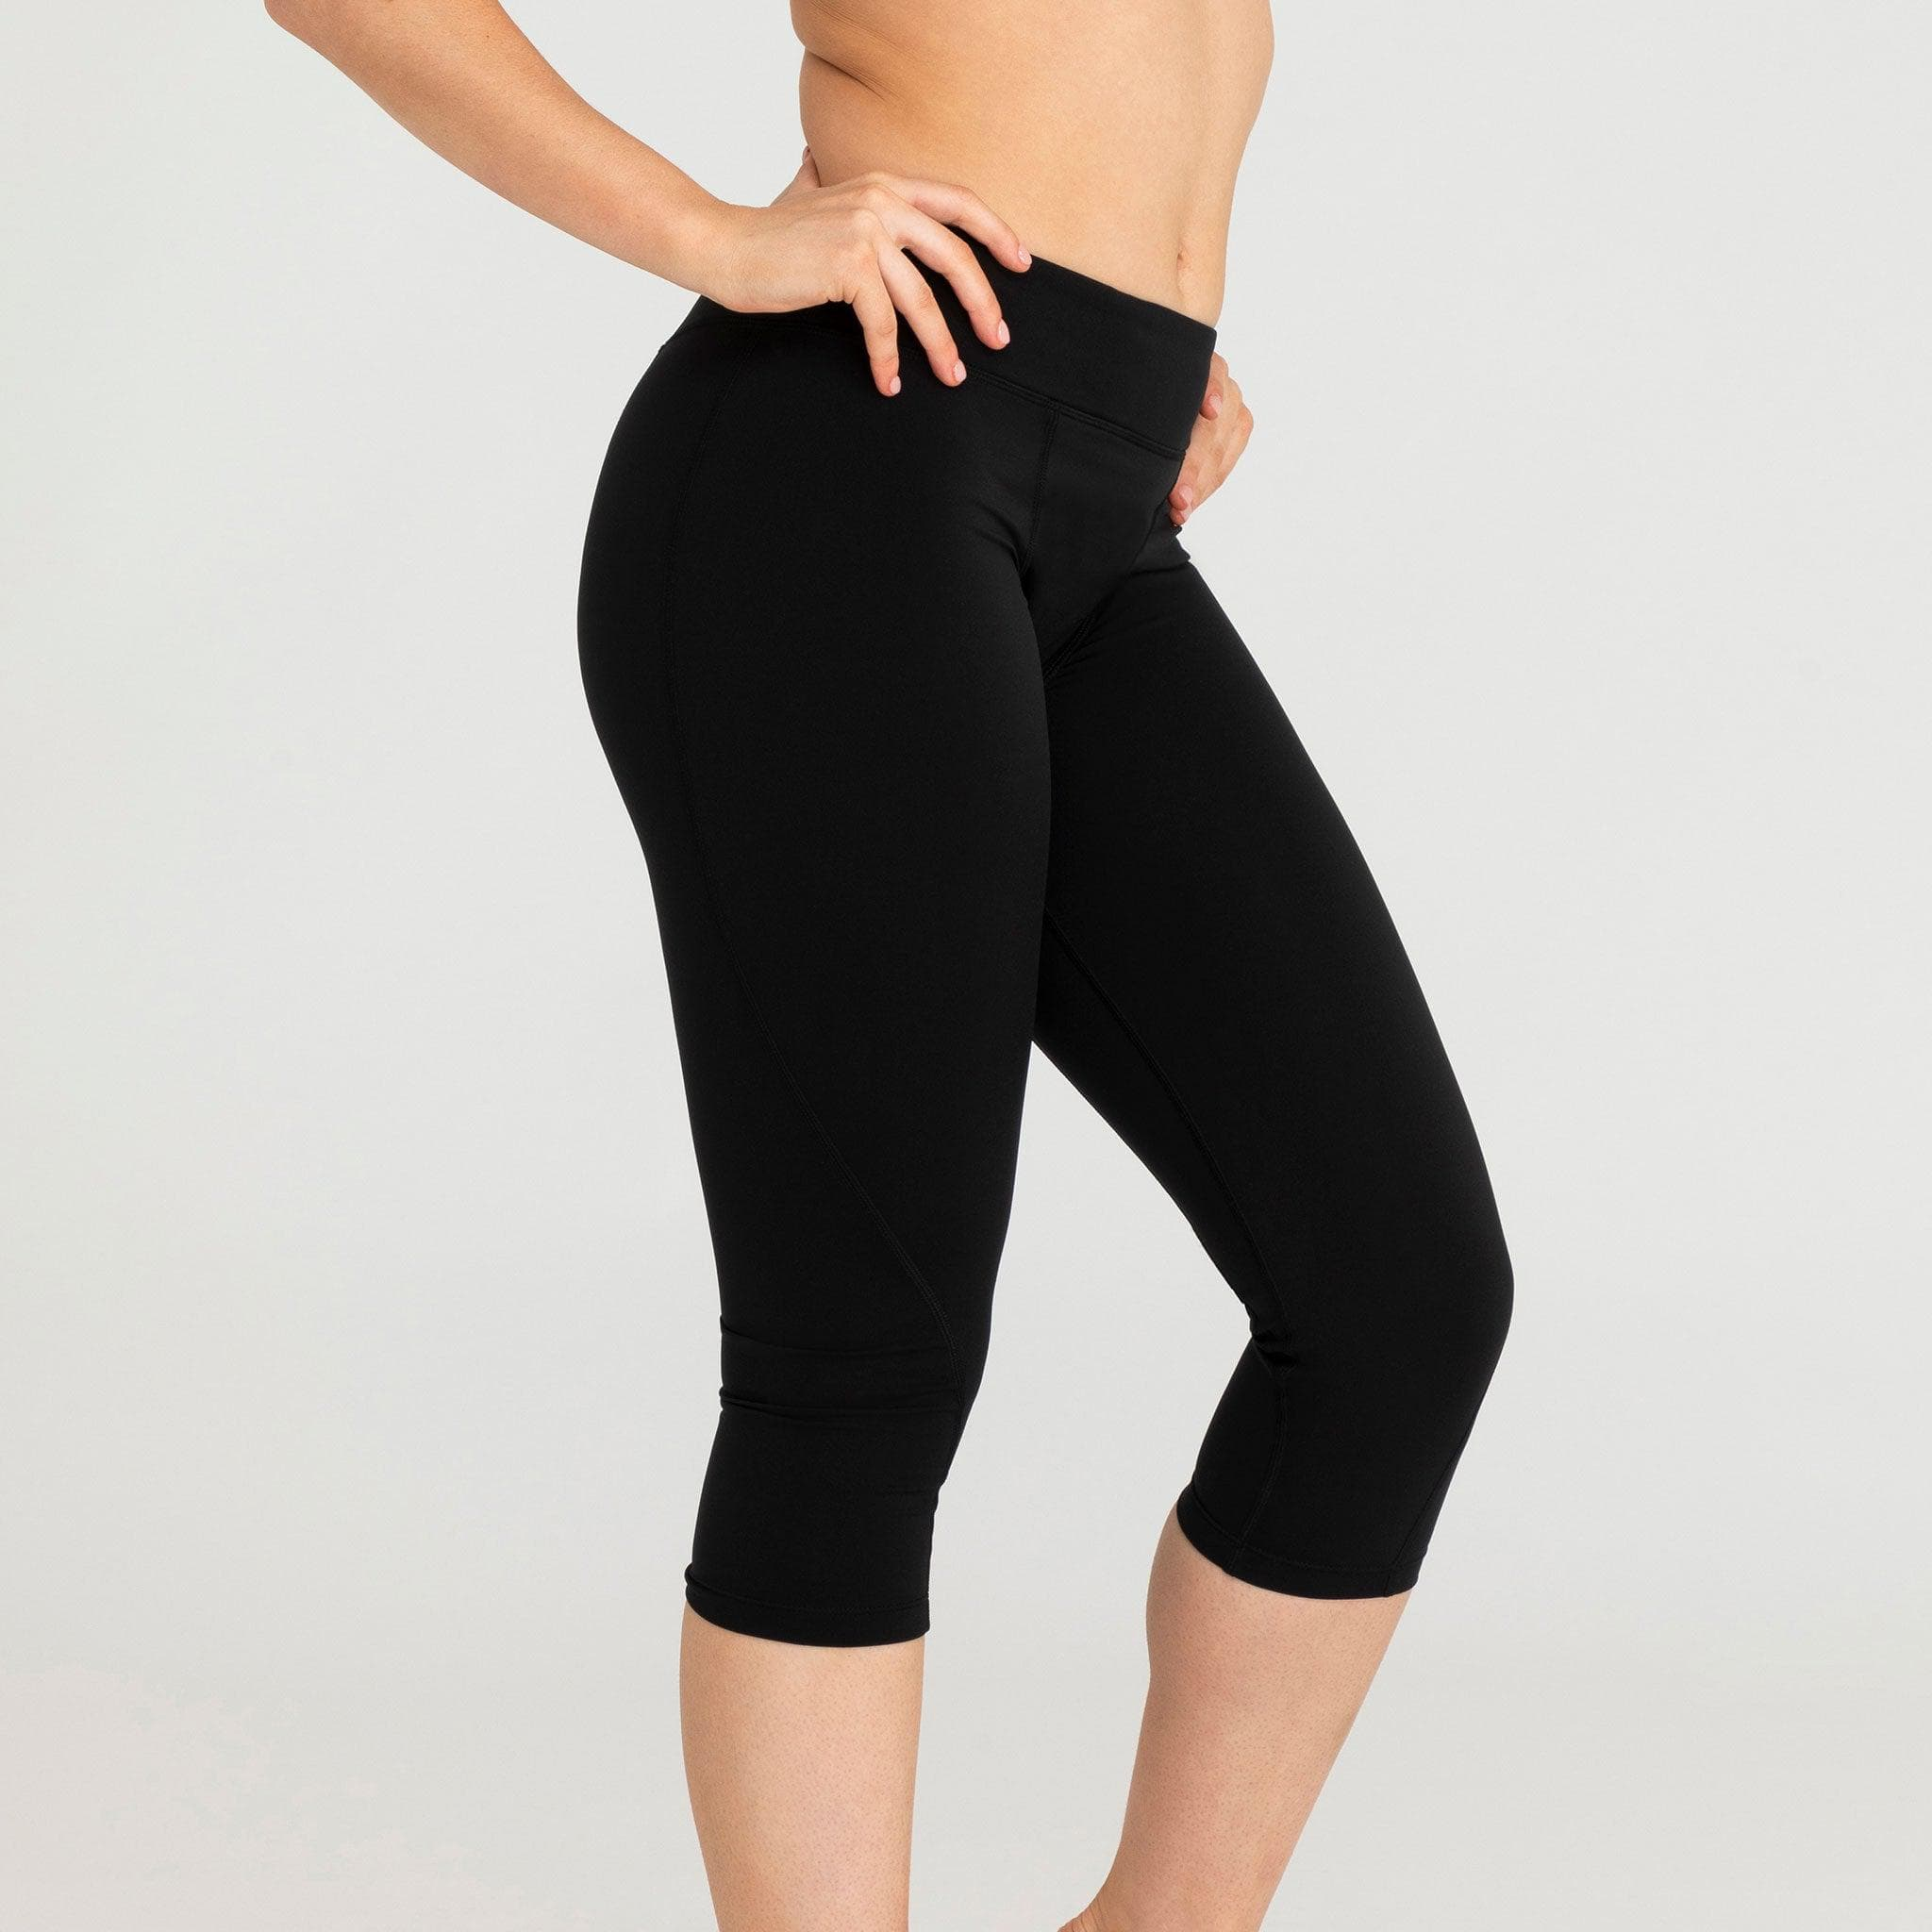 Activewear 3/4 Leggings Light-Moderate Absorbency - Modibodi